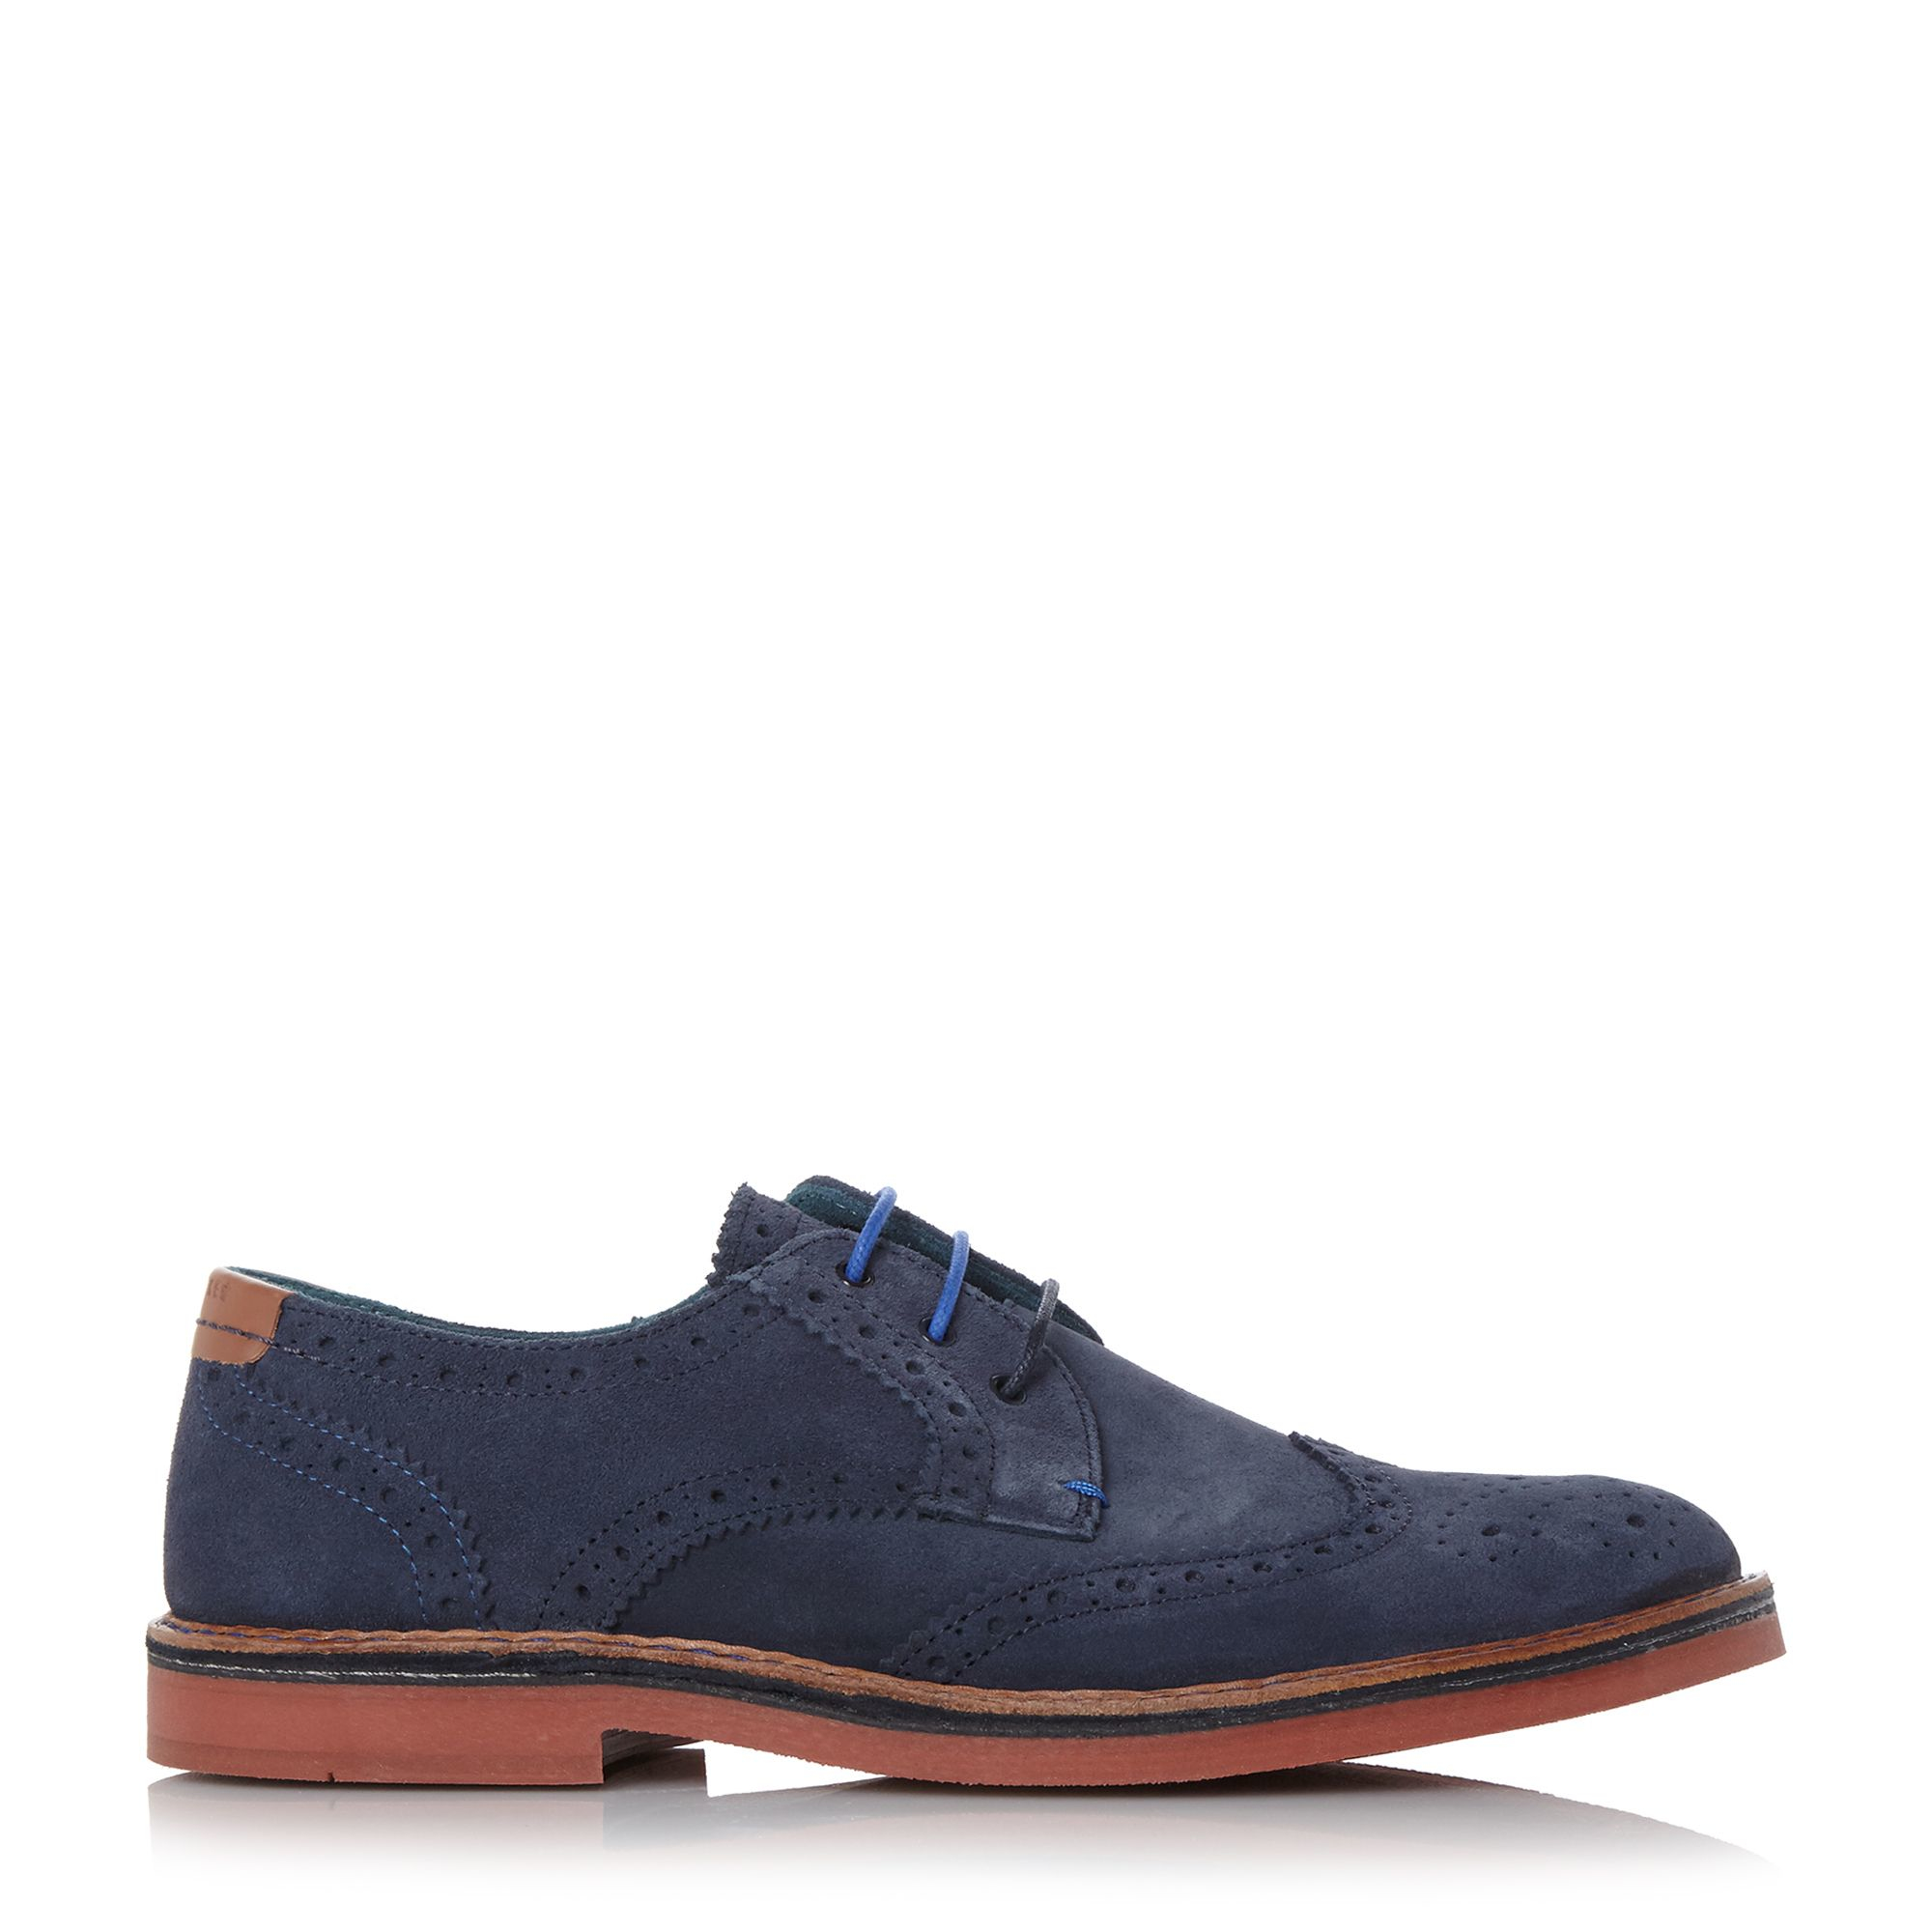 Ted Baker Suede Reith Brogue Shoes in Navy (Blue) for Men